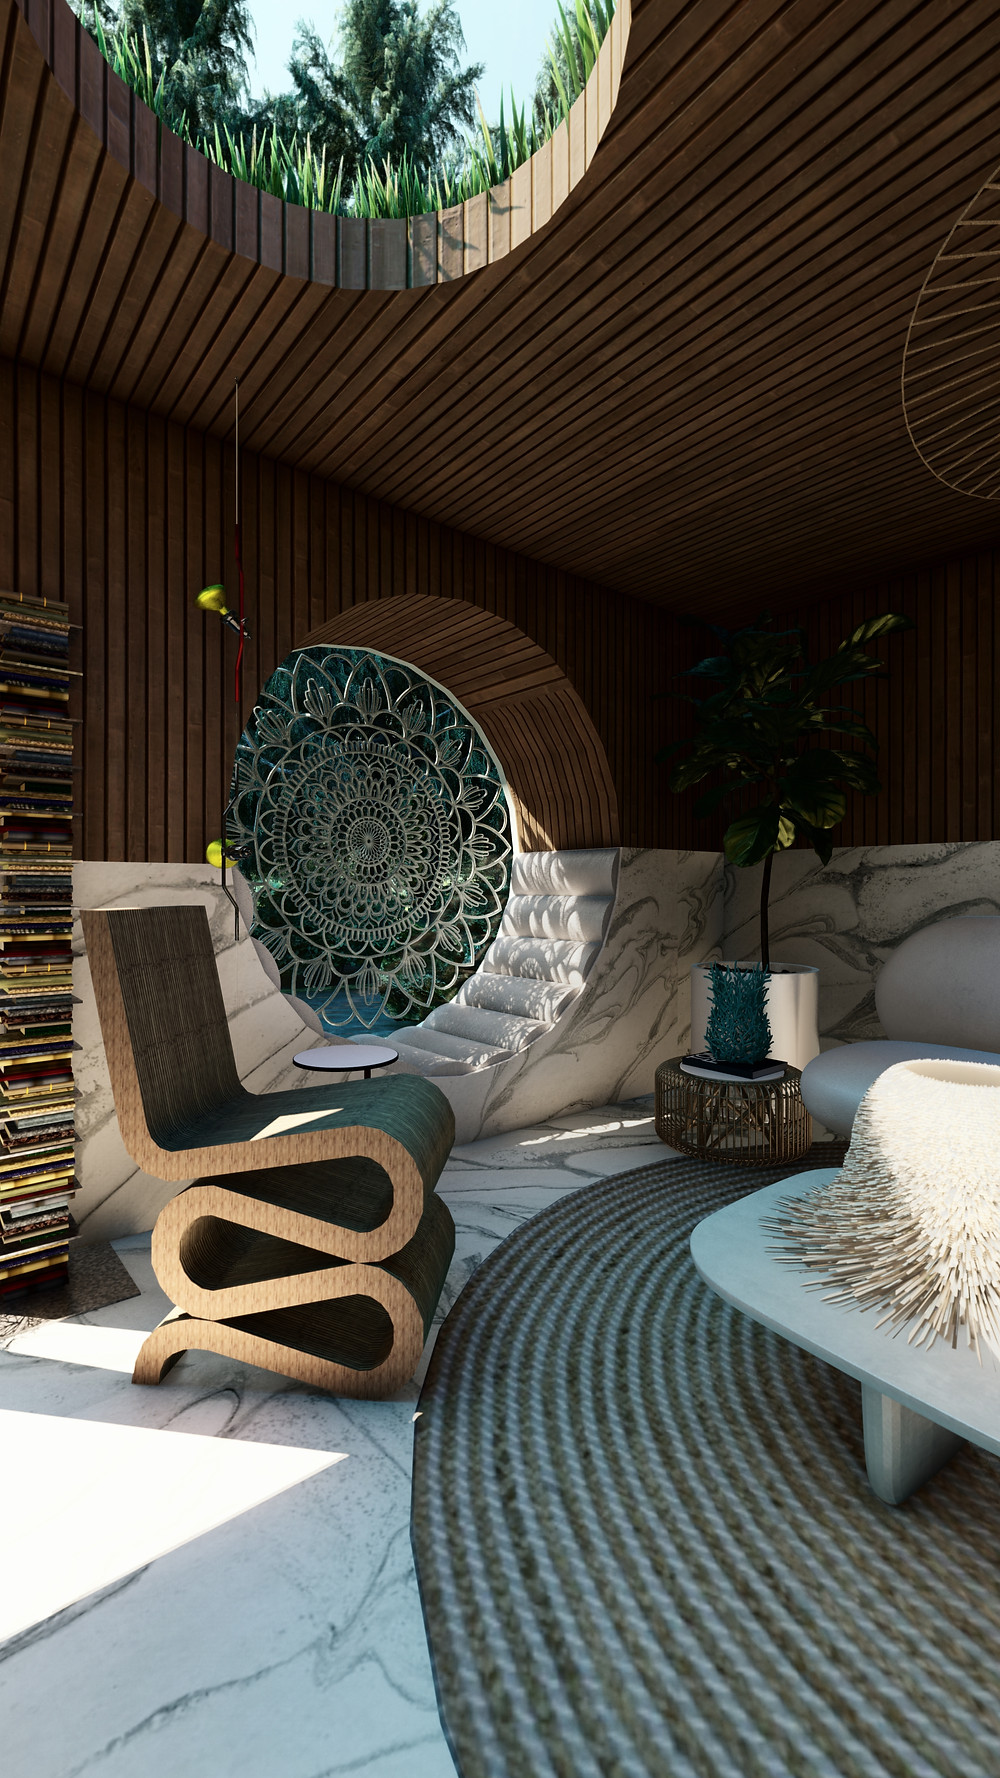 The Awakening House | Jesus Pacheco Architects | CASACOR Miami 2020